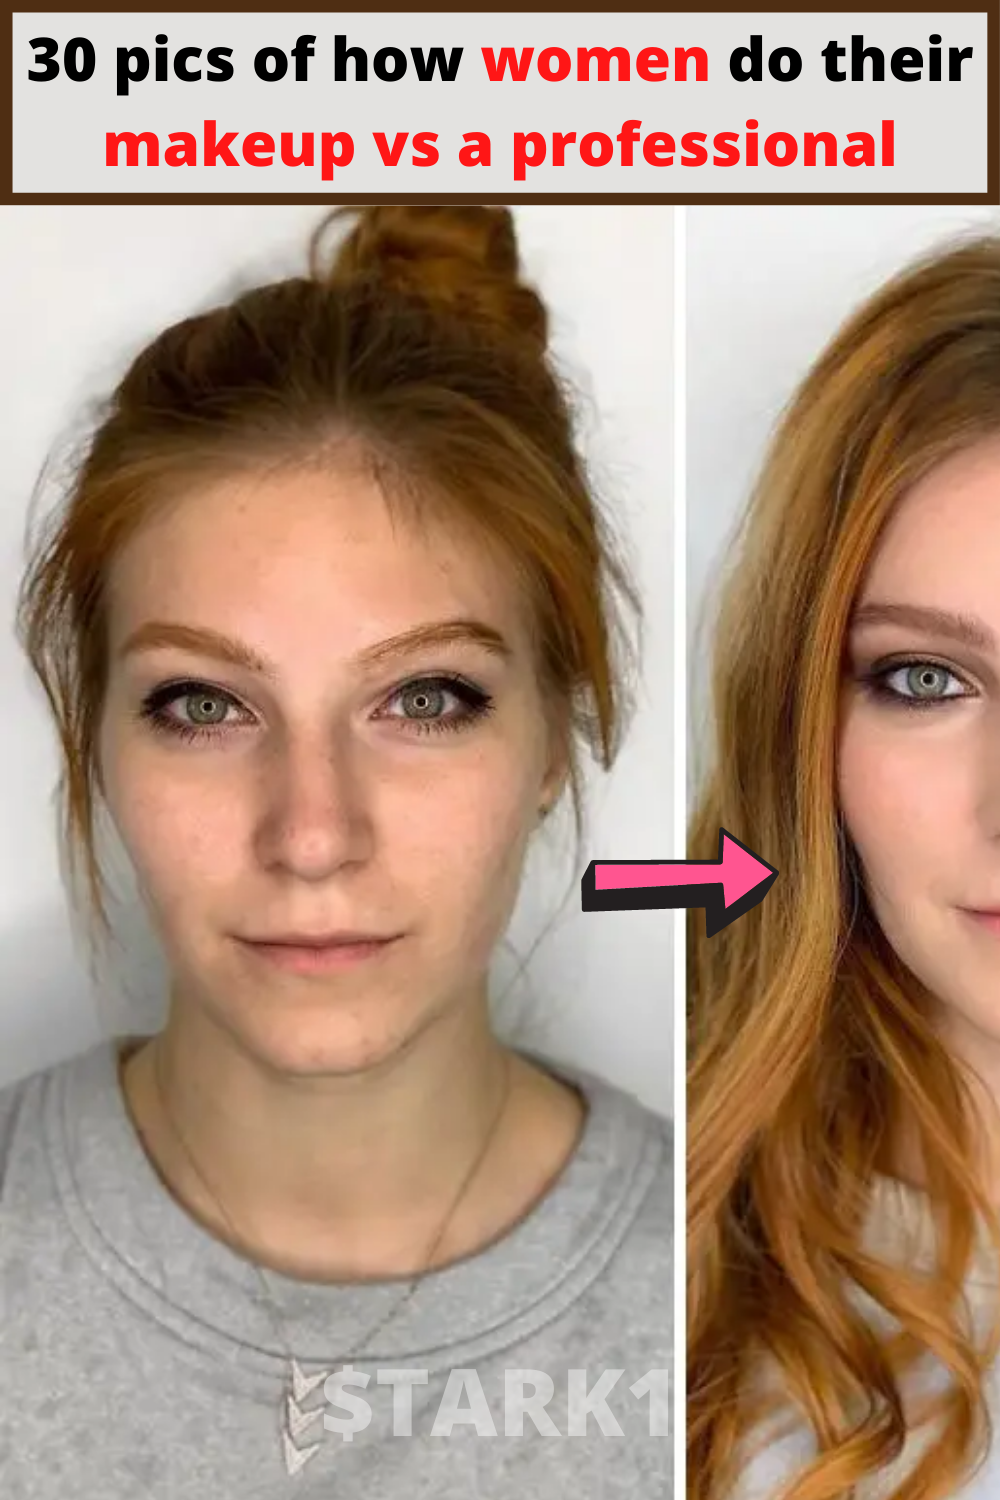 30 Pics Of How Women Do Their Makeup Vs A Professional In 2020 Putting On Makeup Makeup Hair Styles